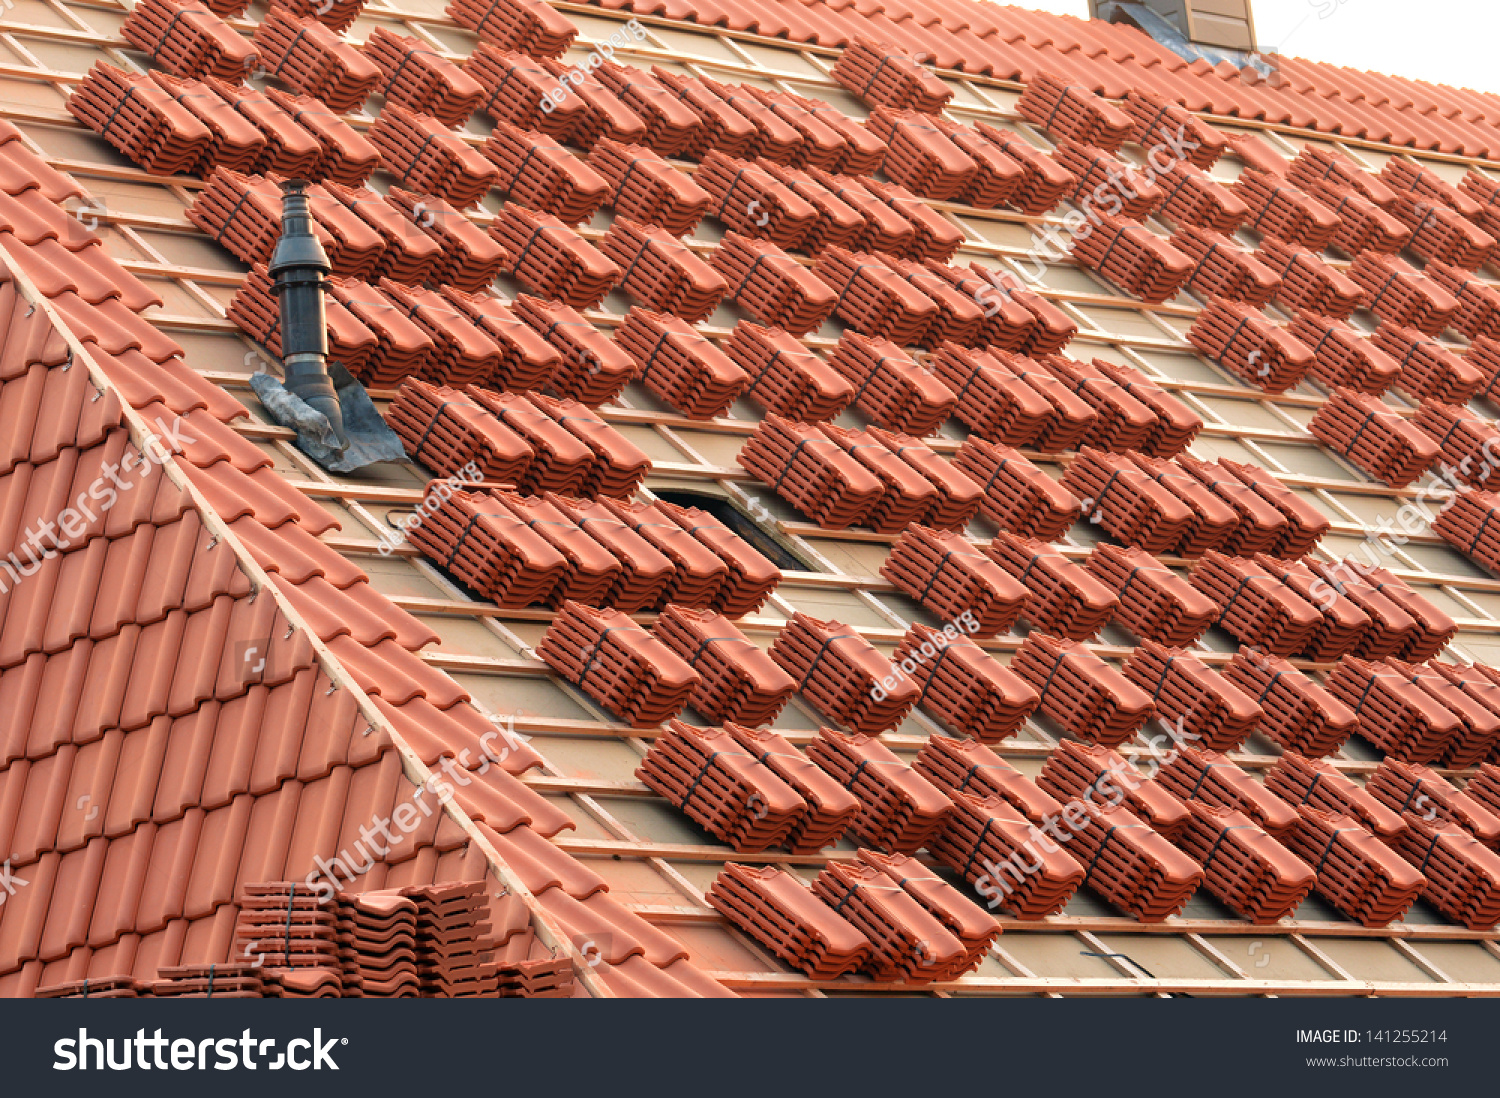 Roof Under Construction Stacks Roof Tiles Stock Photo